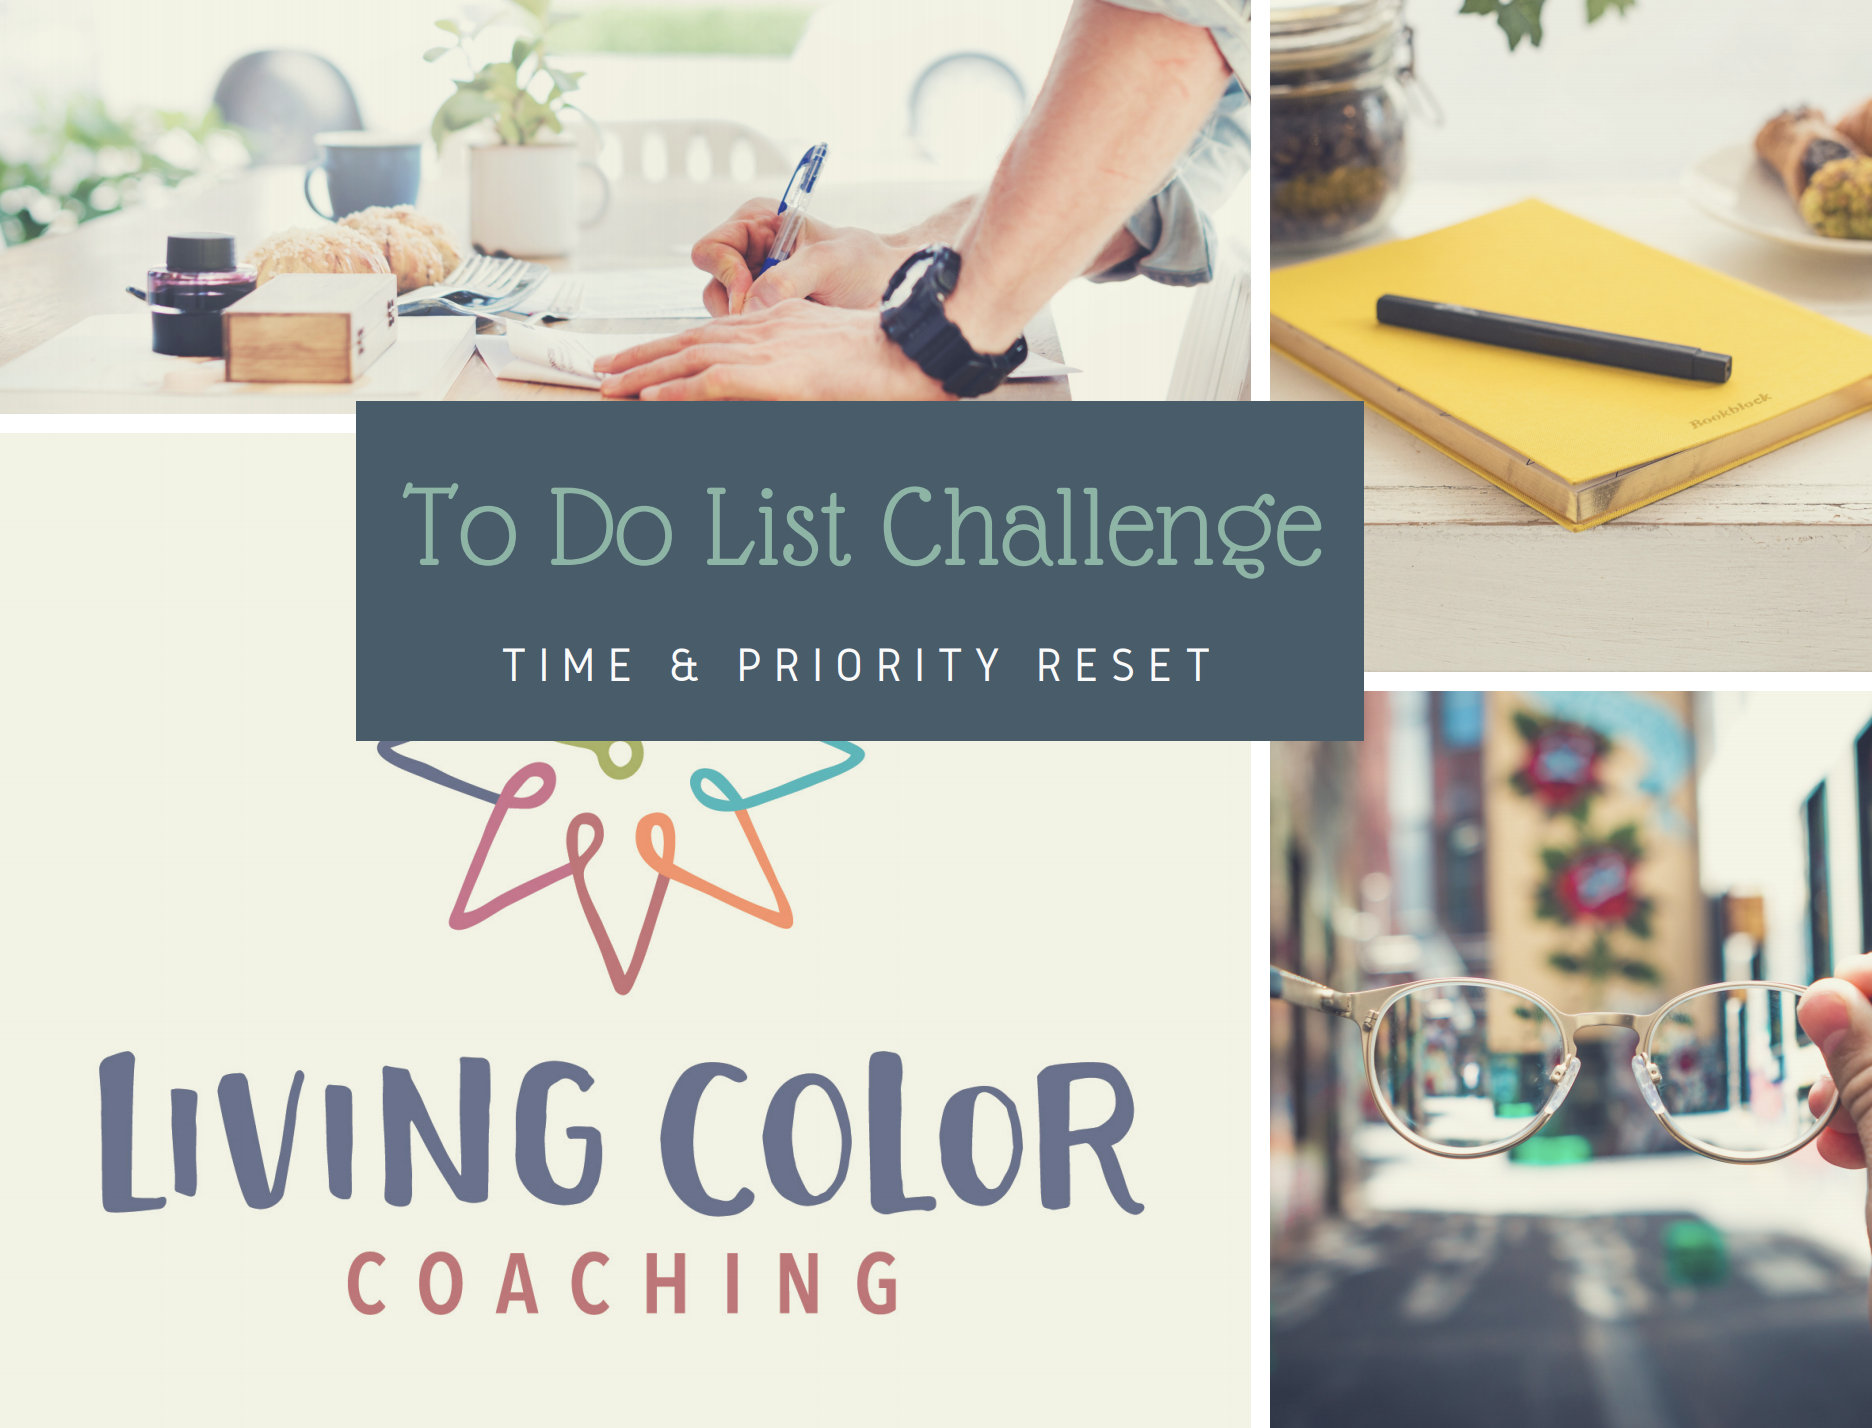 Click Below for the free download. Reset youR schedule in 7 days!